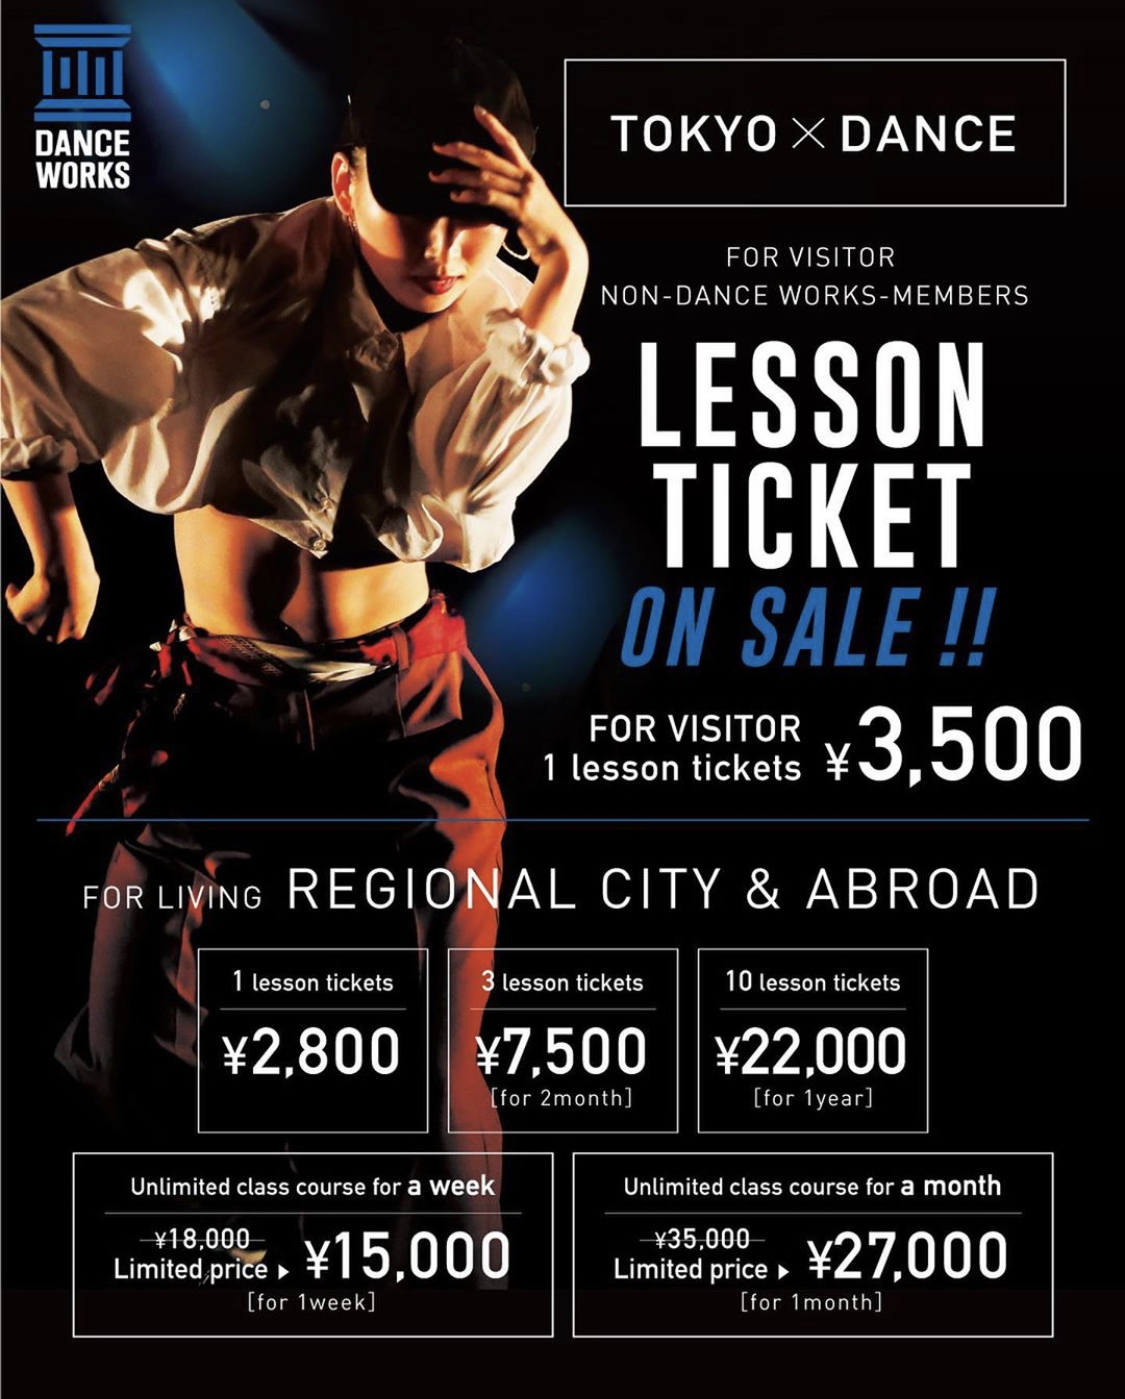 LESSON TICKET ON SALE!!